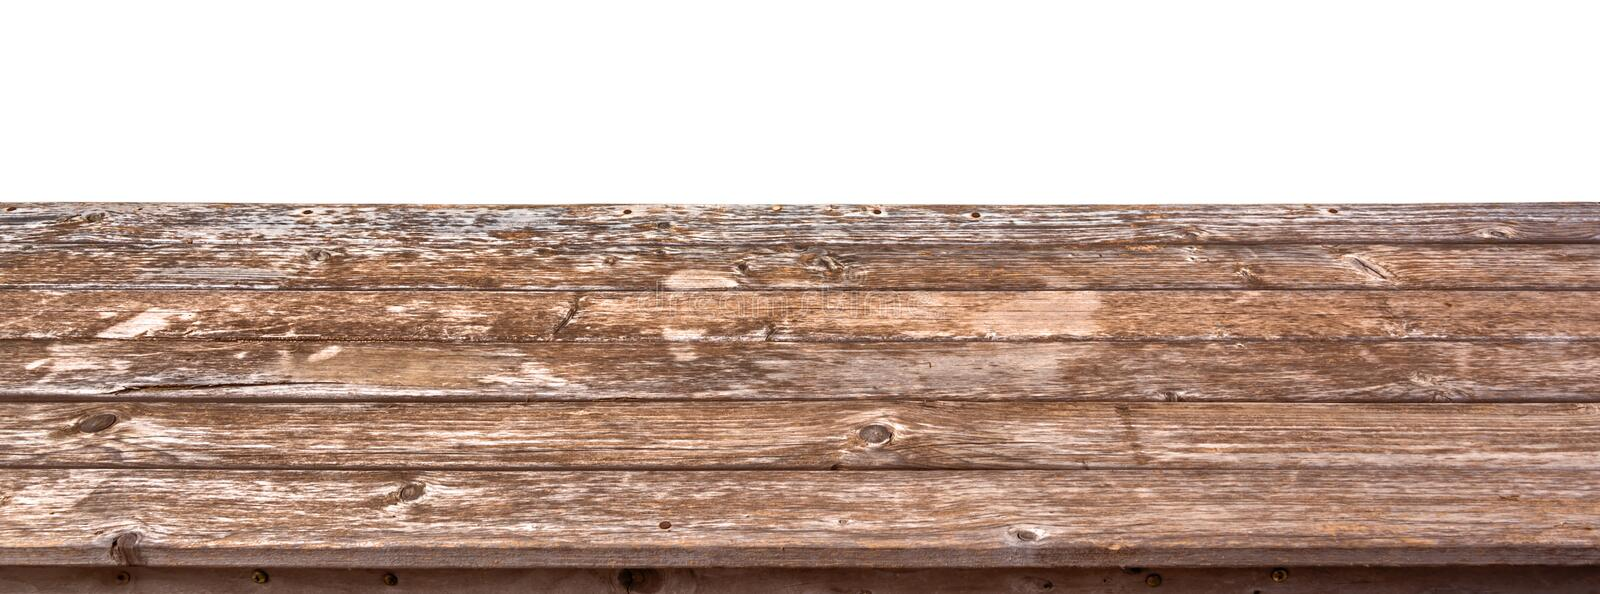 Empty wooden table top isolated on white background, ready to use for display of your products royalty free stock photography